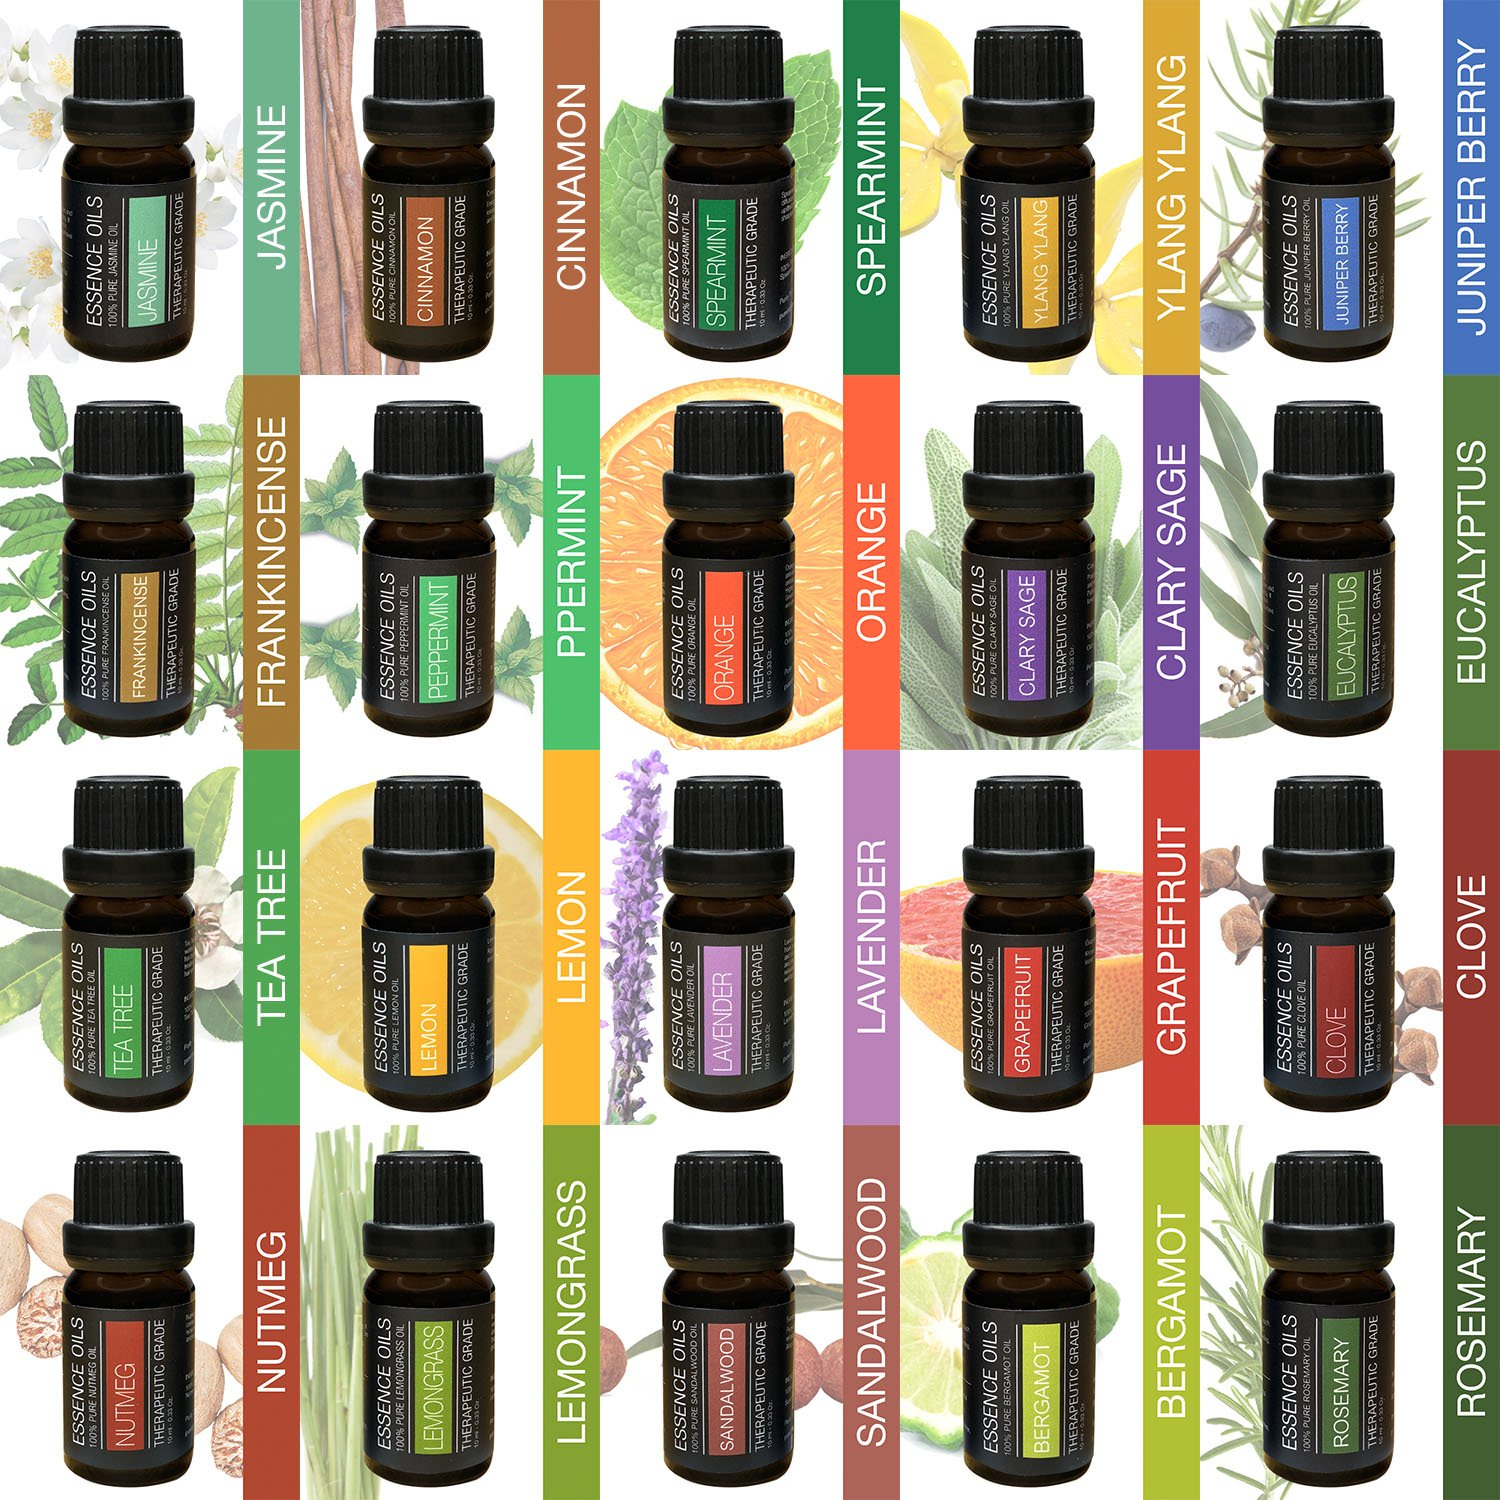 Pure Daily Care's Ultimate Aromatherapy Bundle